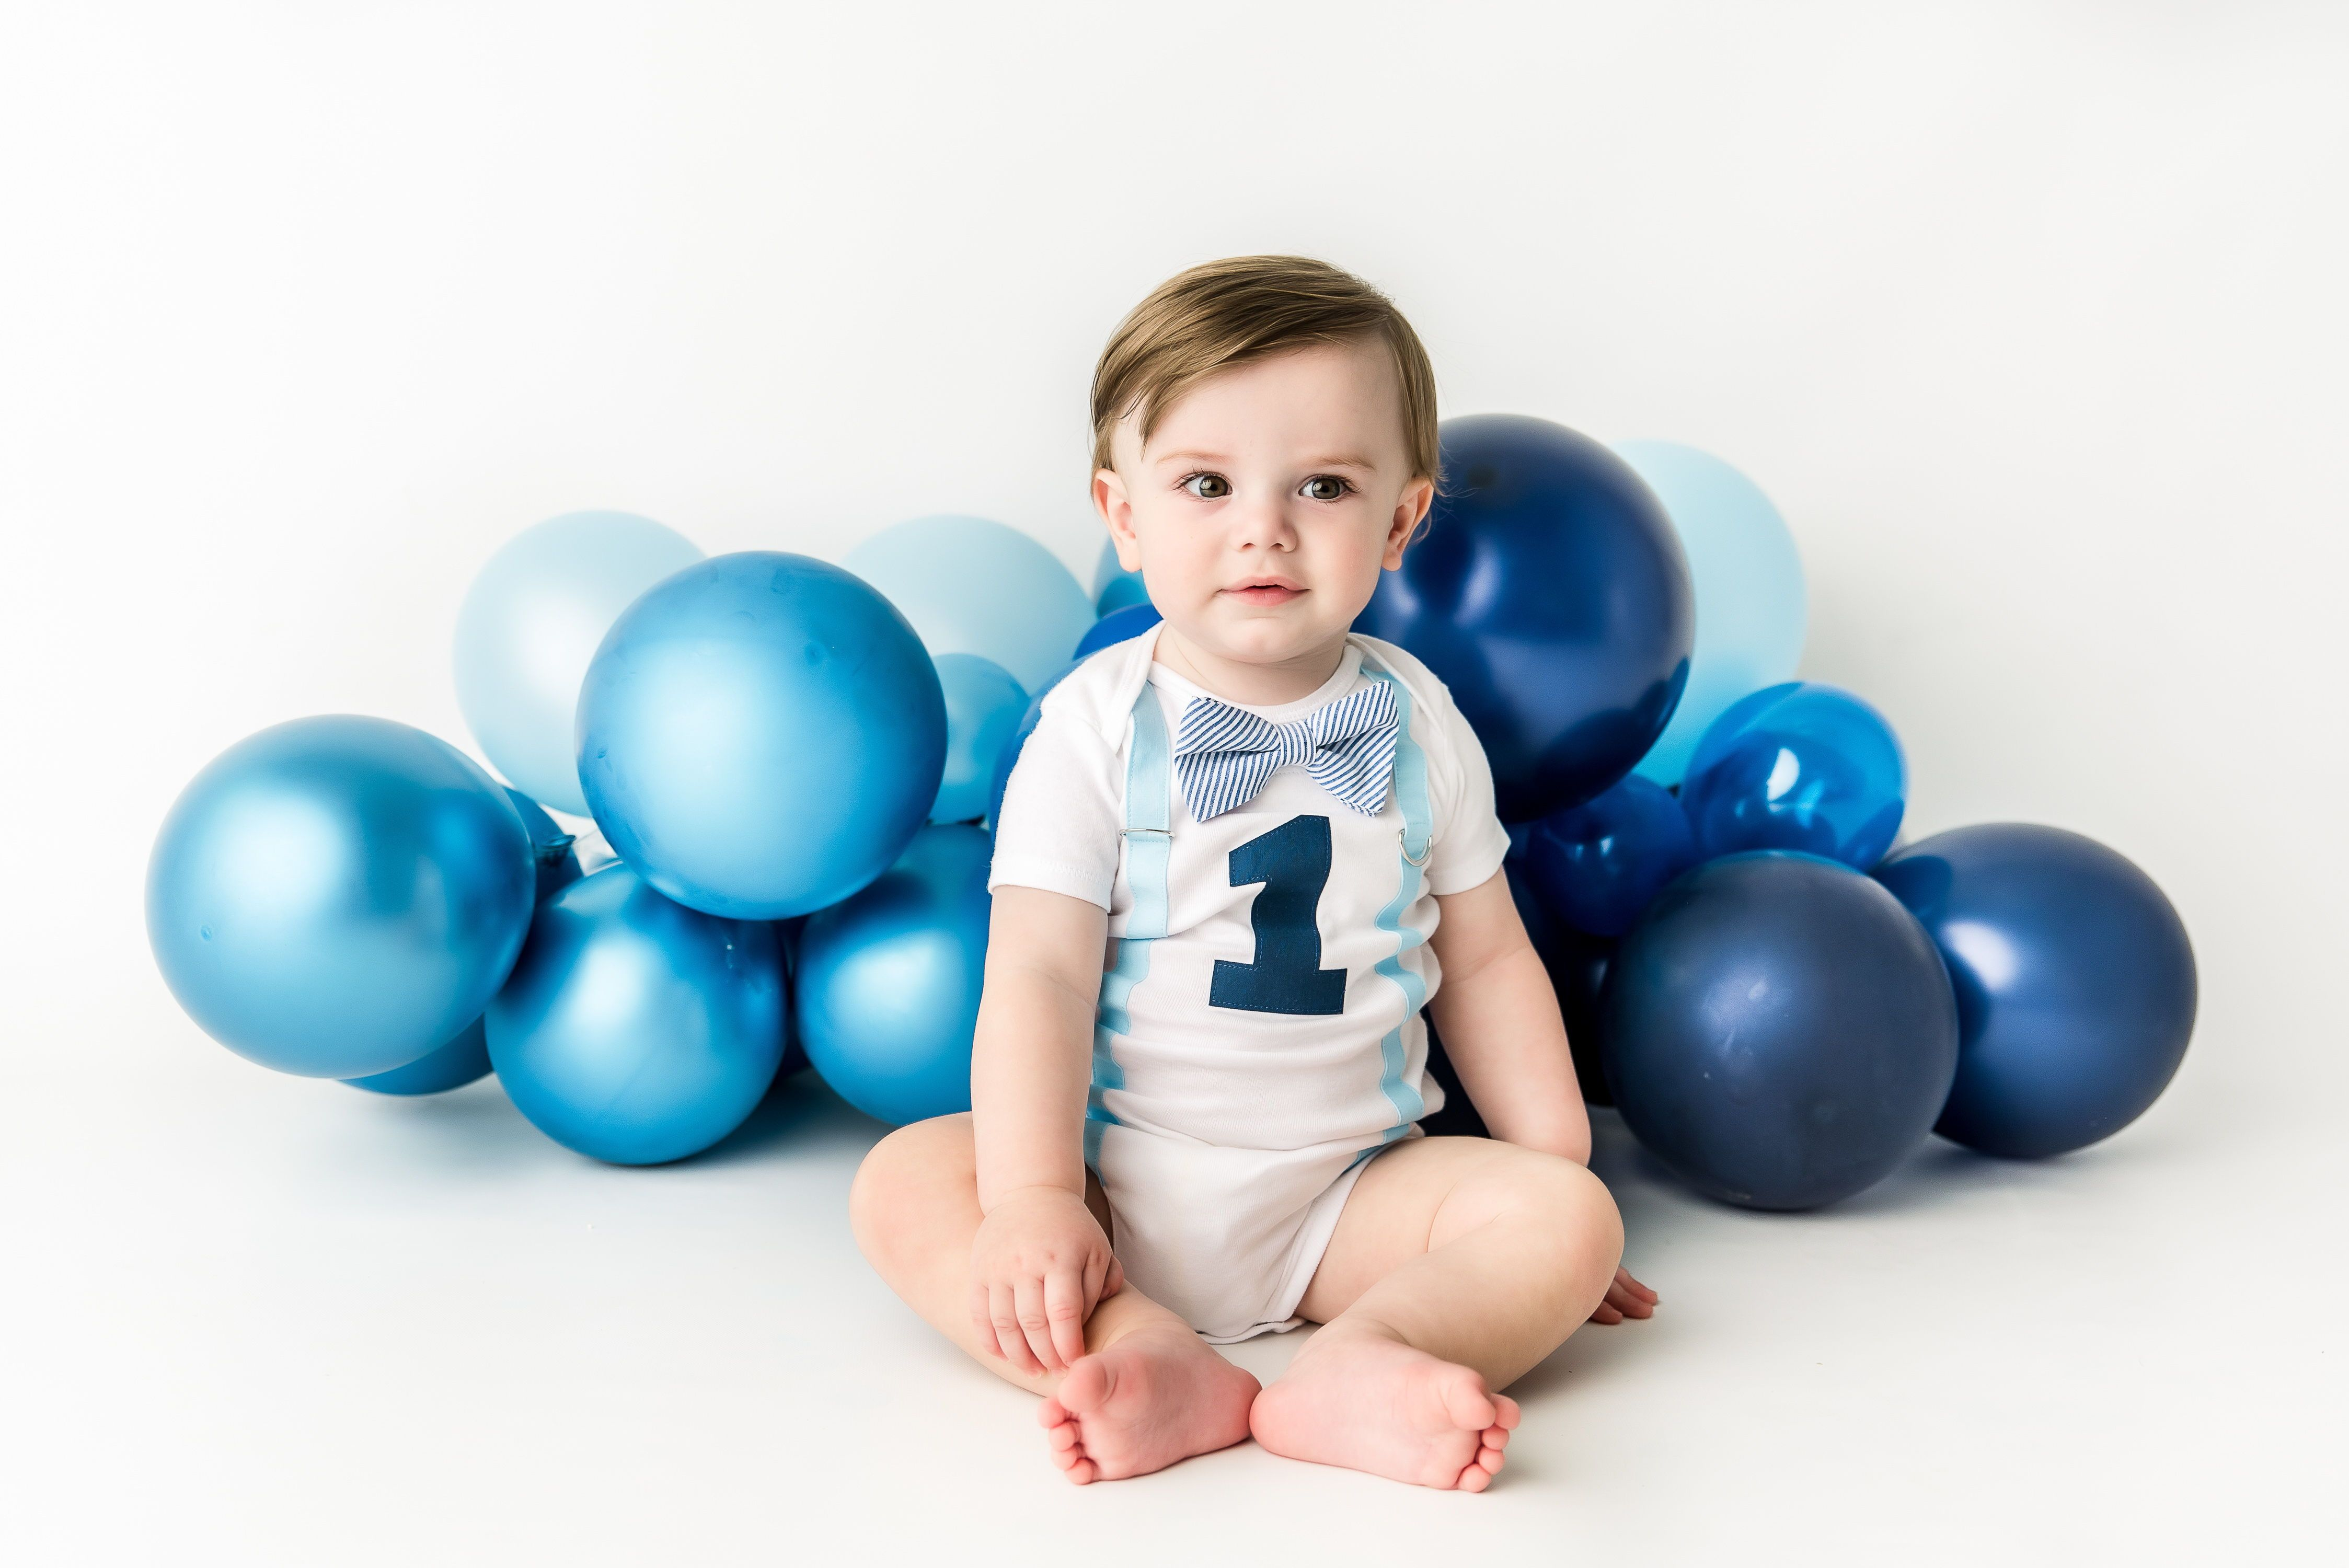 210 Best Baby Boy 1st Birthday Outfits Ideas In 2021 Baby Boy 1st Birthday 1st Birthday Outfits 1st Birthday Pictures